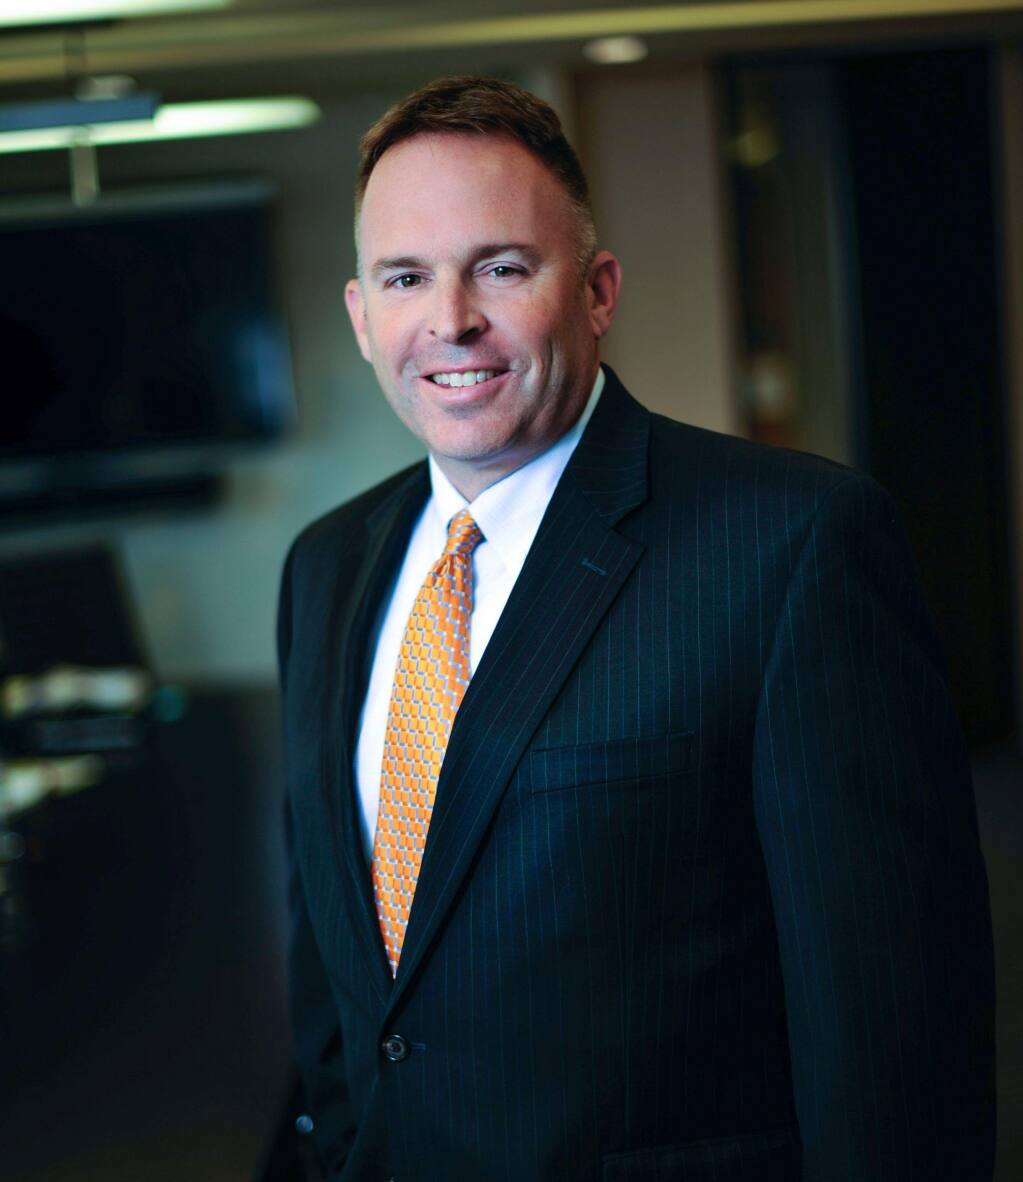 Mark S. Spring, partner, Carothers, DiSante and Freudenberger LLP. (Carothers, DiSante and Freudenberger)